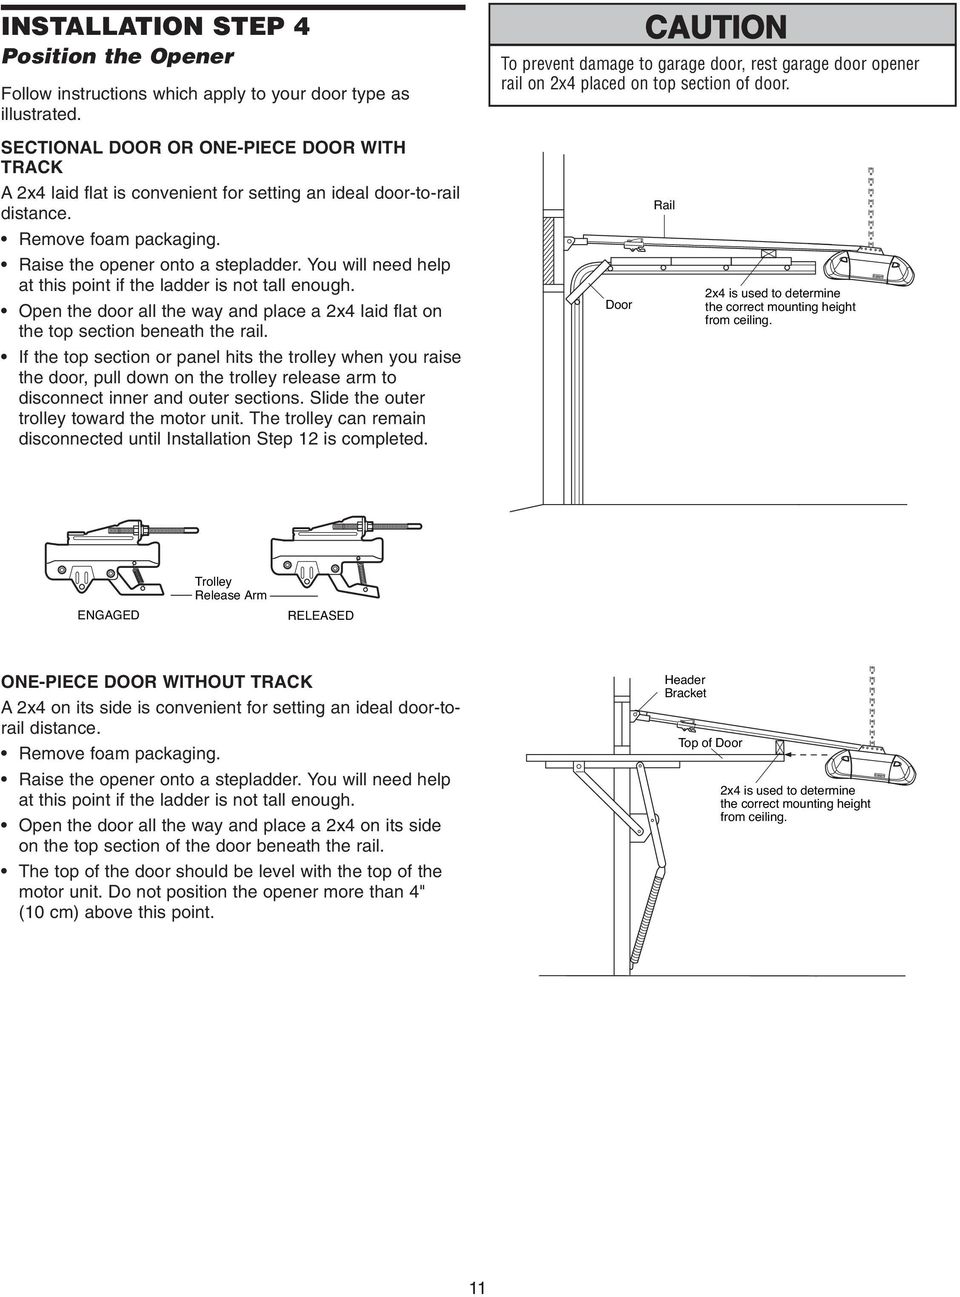 Garage Door Opener Model 2 Hp Pdf Reinforcement Bracket On Motor Diagram You Will Need Help At This Point If The Ladder Is Not Tall Enough Open